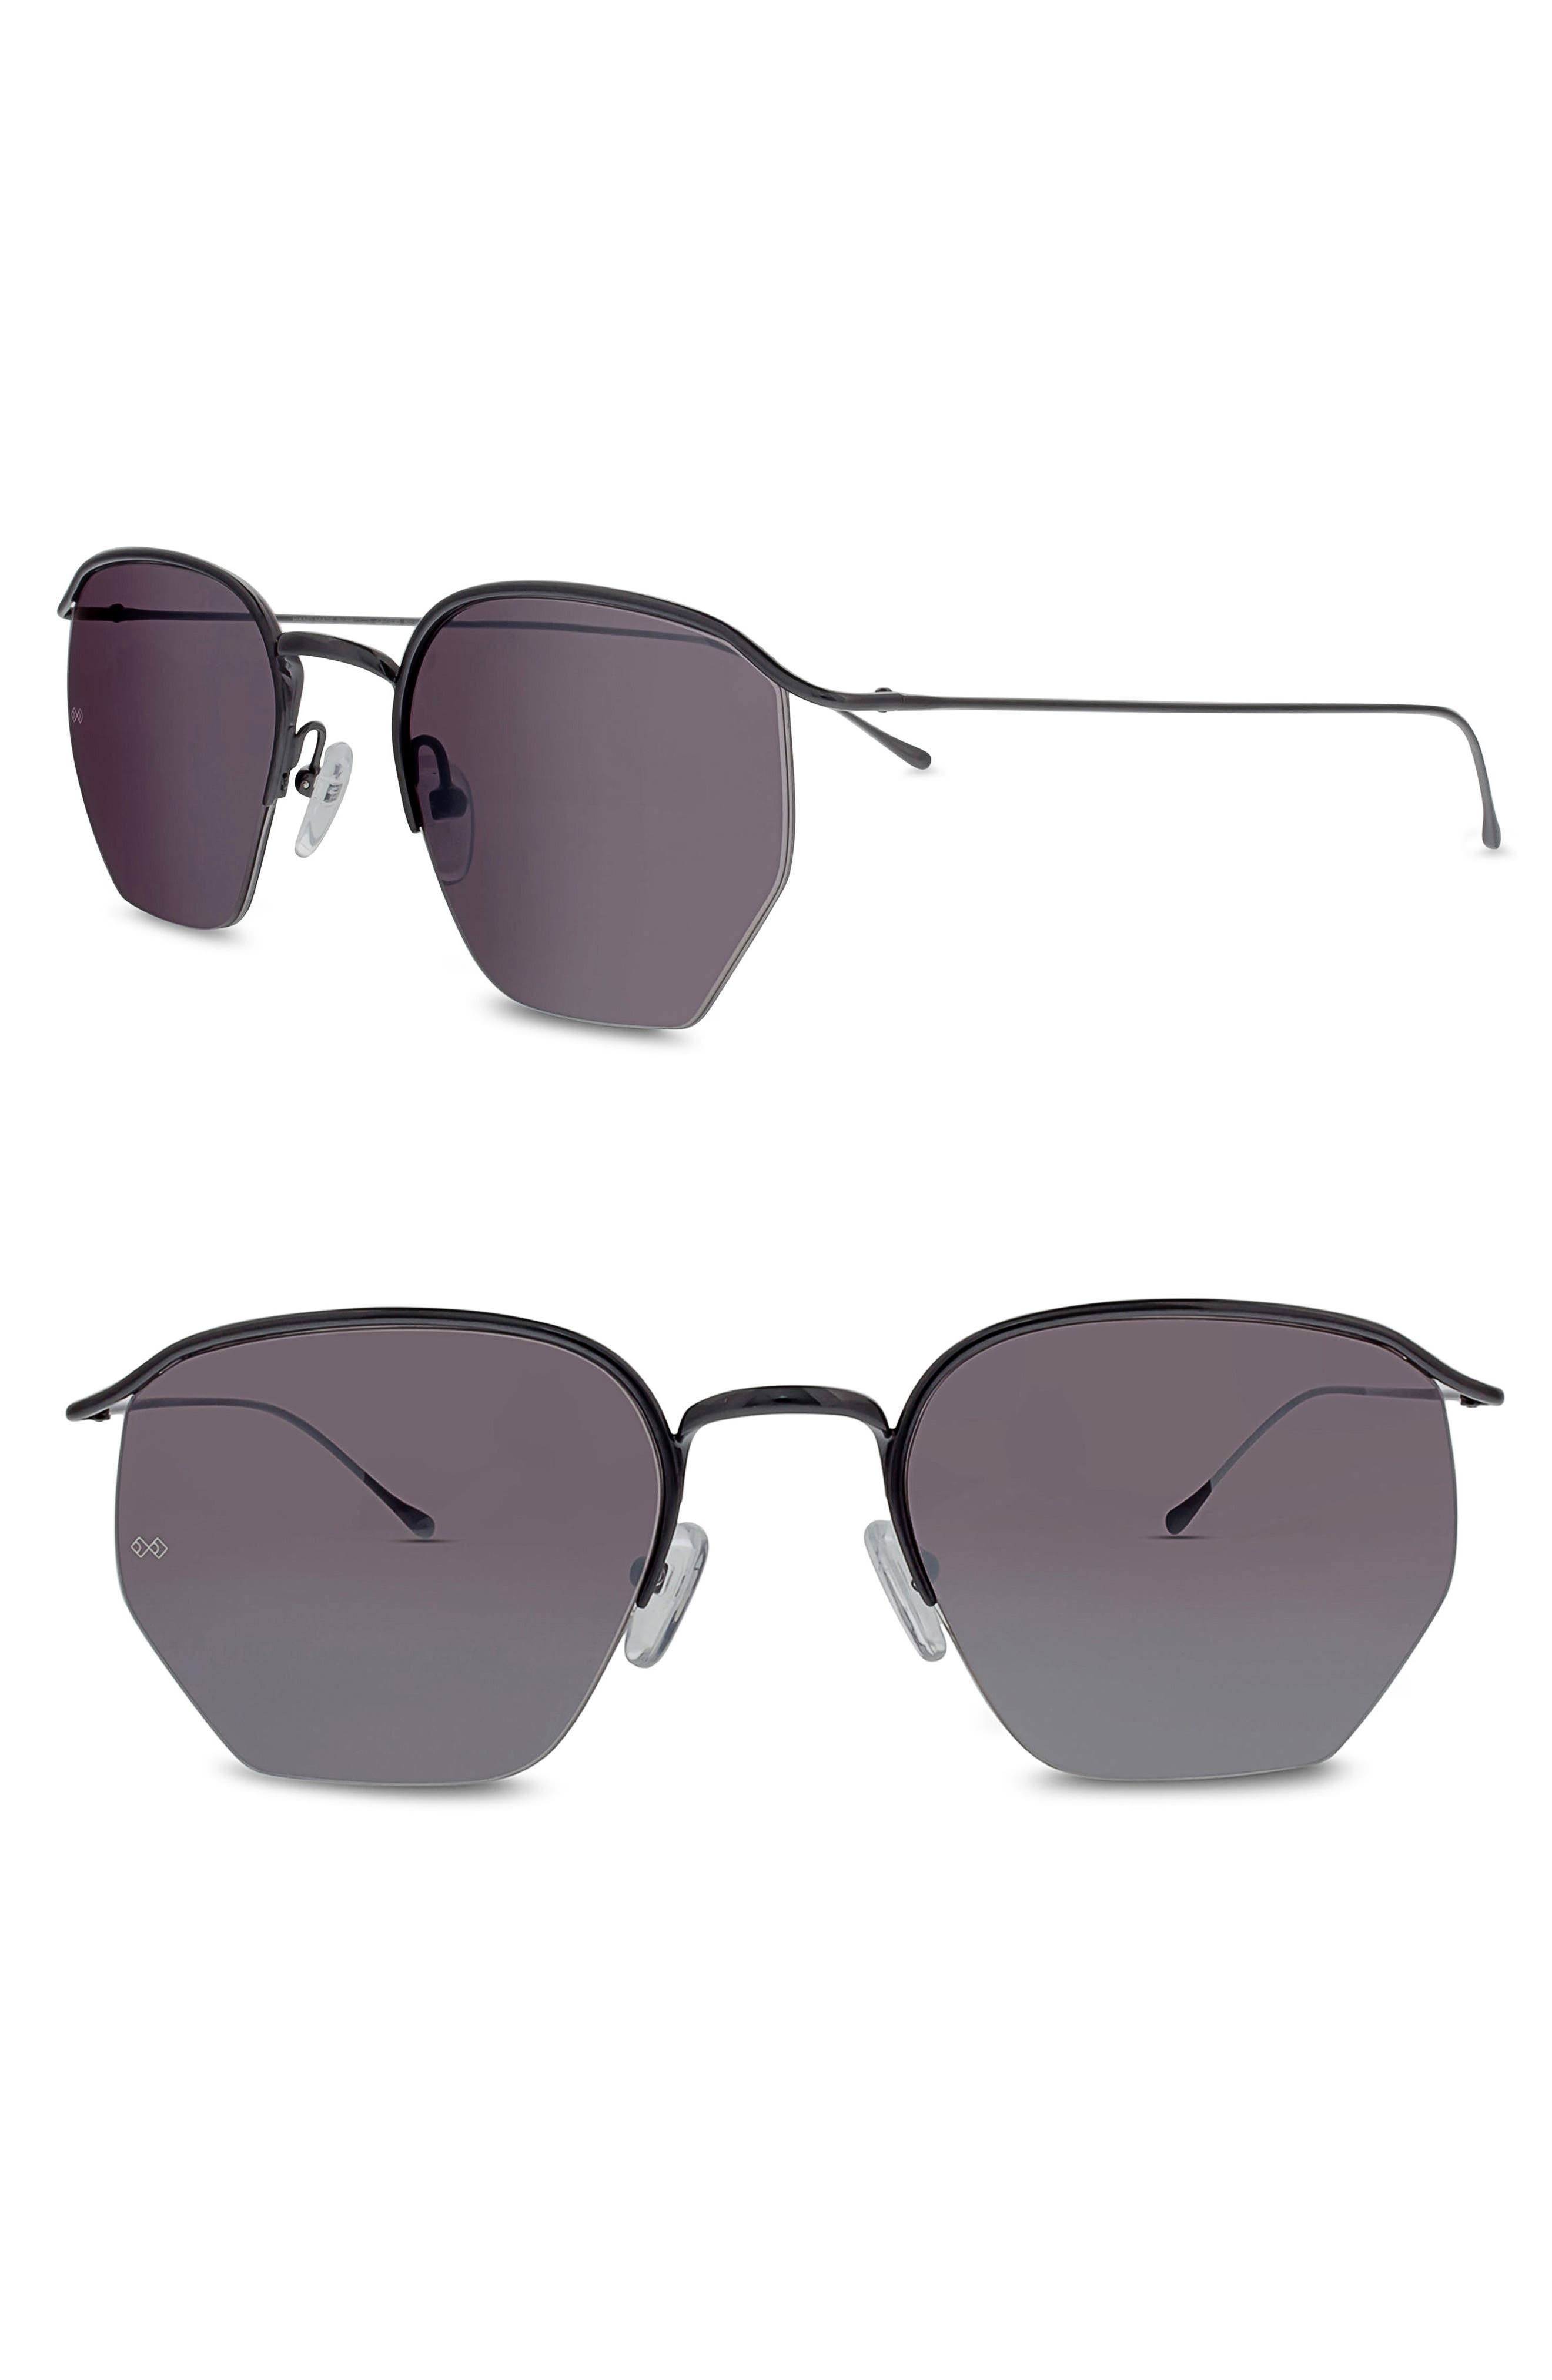 Main Image - SMOKE X MIRRORS Geo I 51mm Semi Rimless Sunglasses